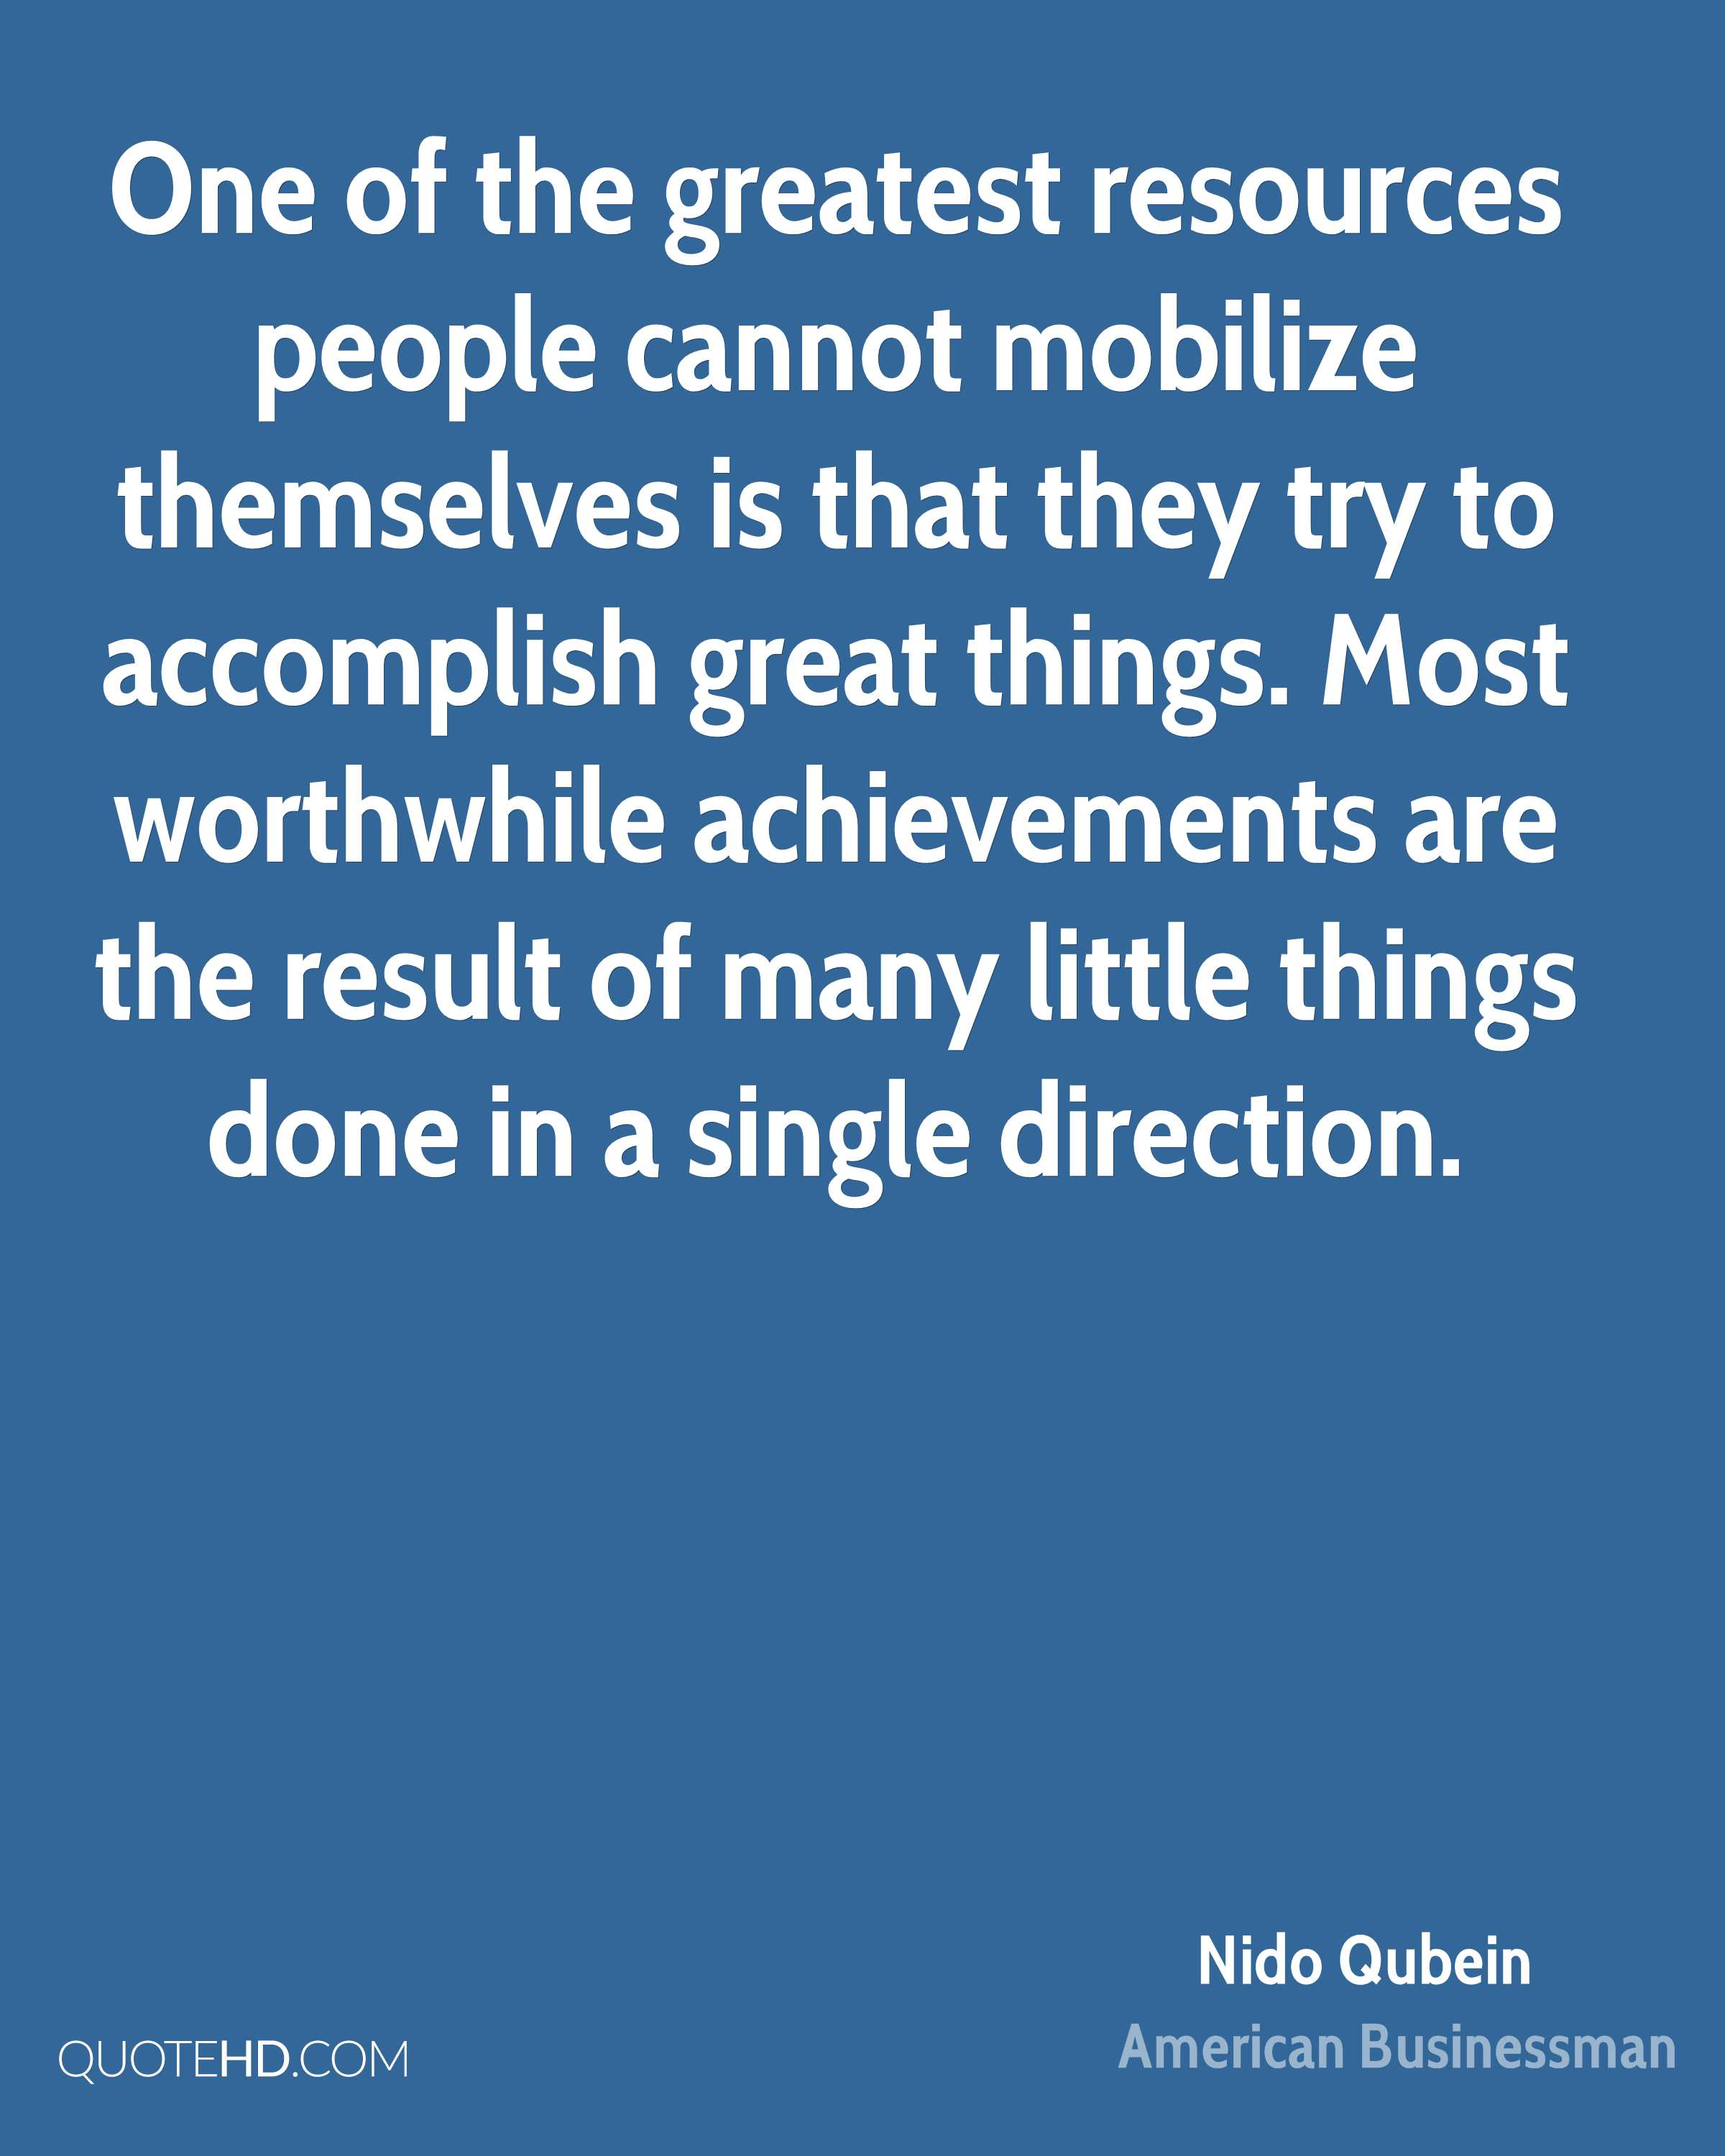 nido qubein quotes quotehd one of the greatest resources people cannot mobilize themselves is that they try to accomplish great